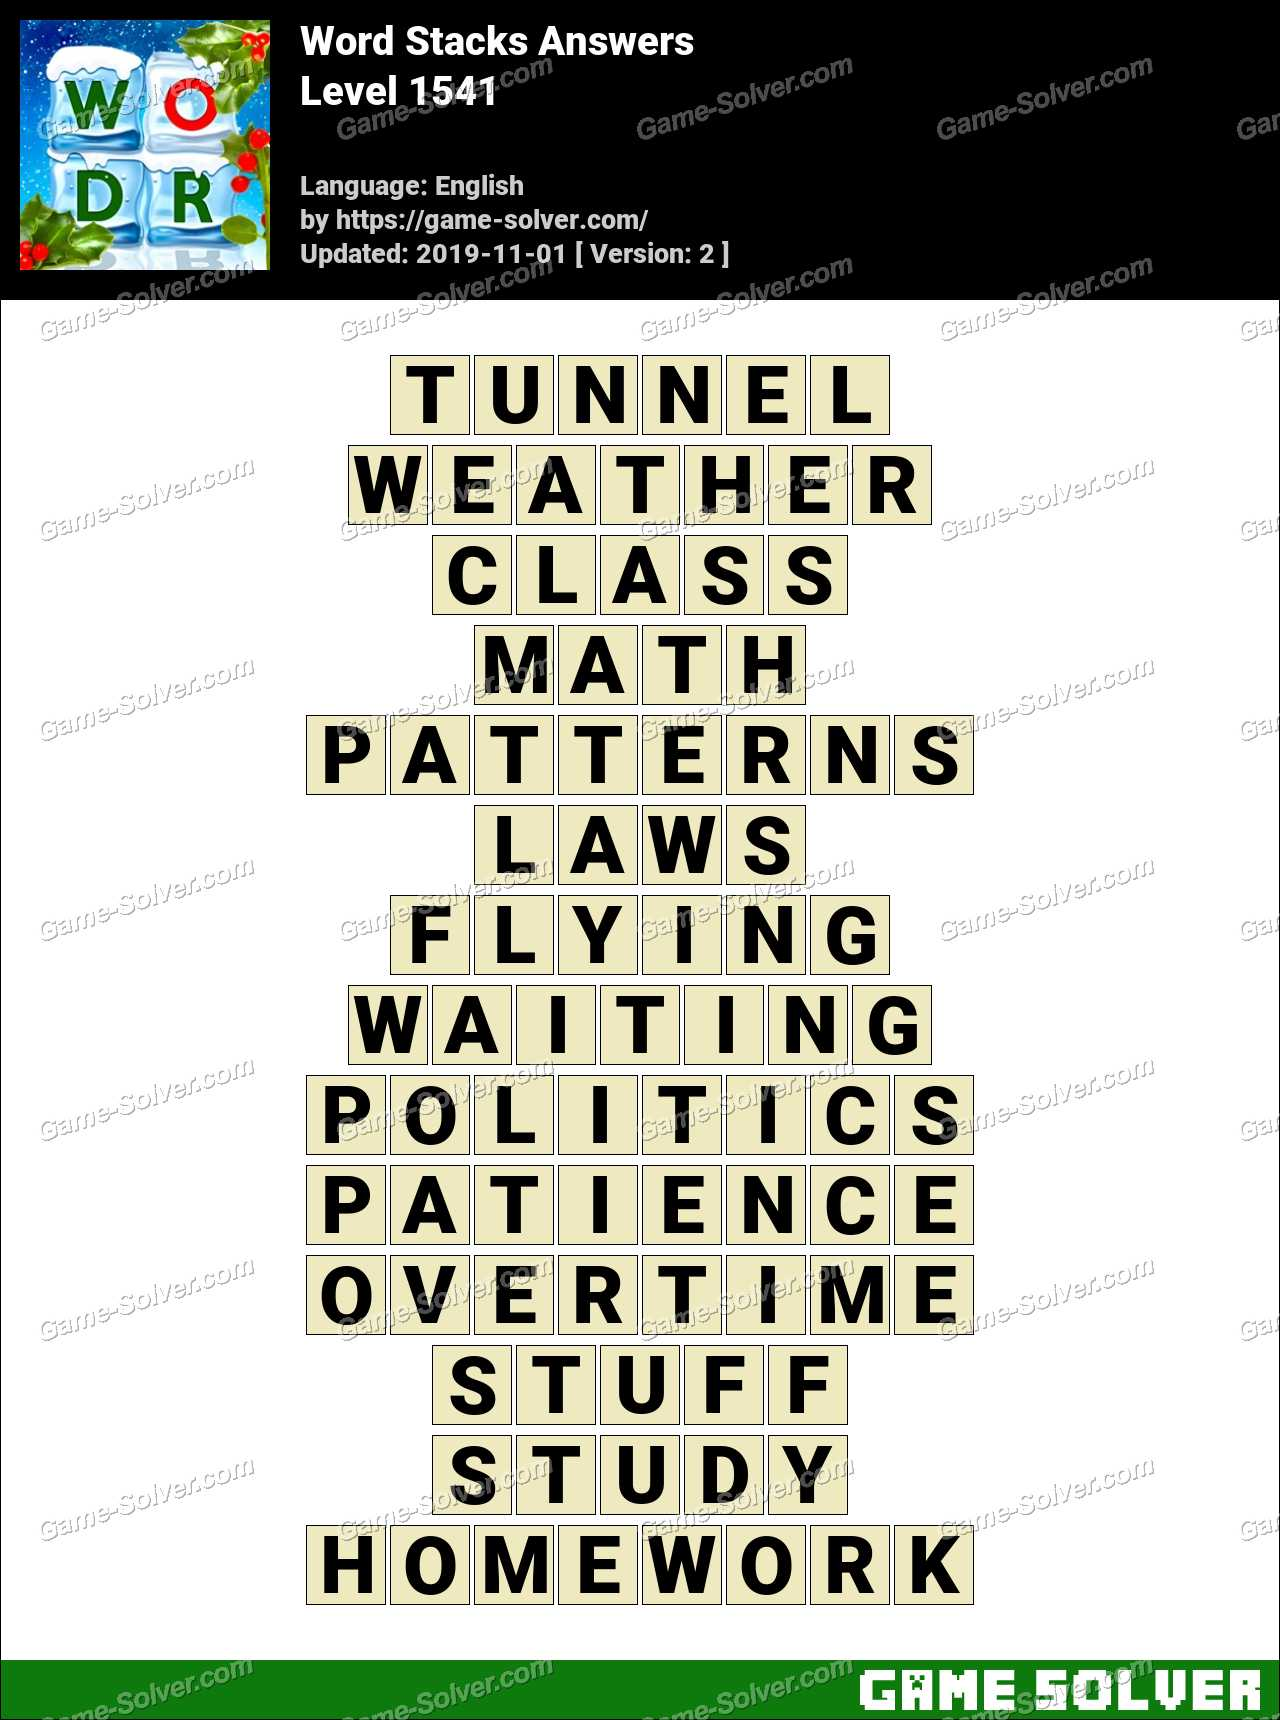 Word Stacks Level 1541 Answers